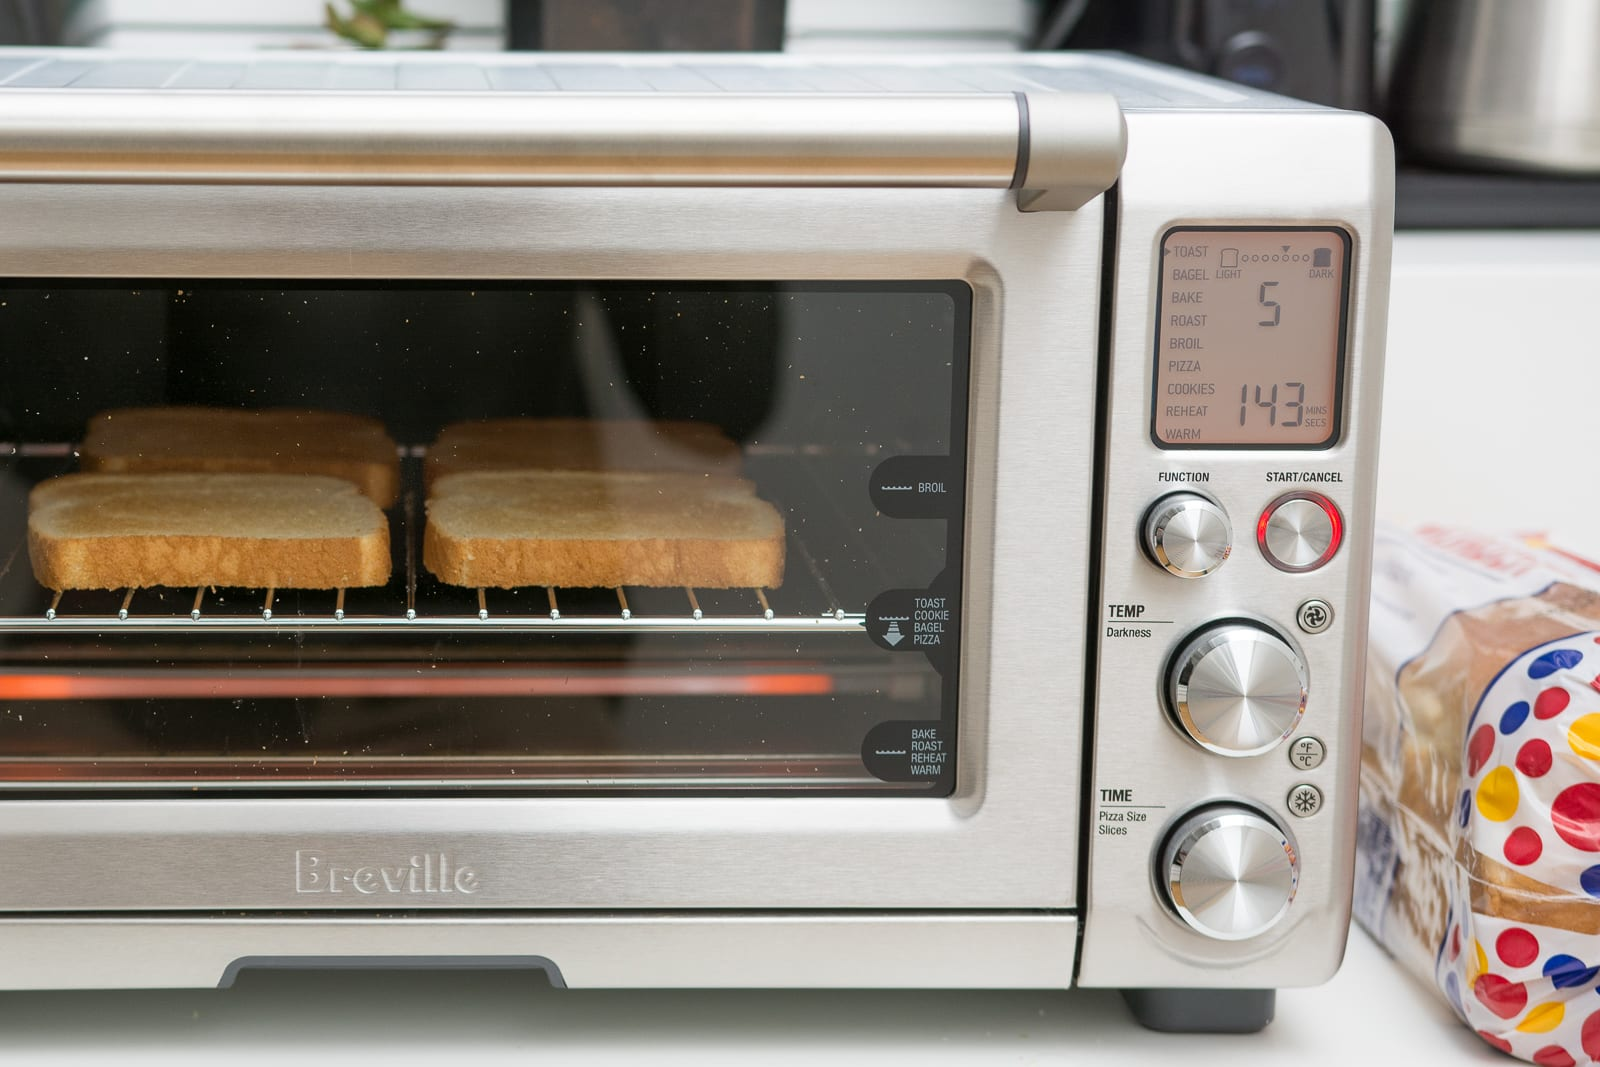 Umer Reports Cuisinart Tob 260n1 Toaster Oven